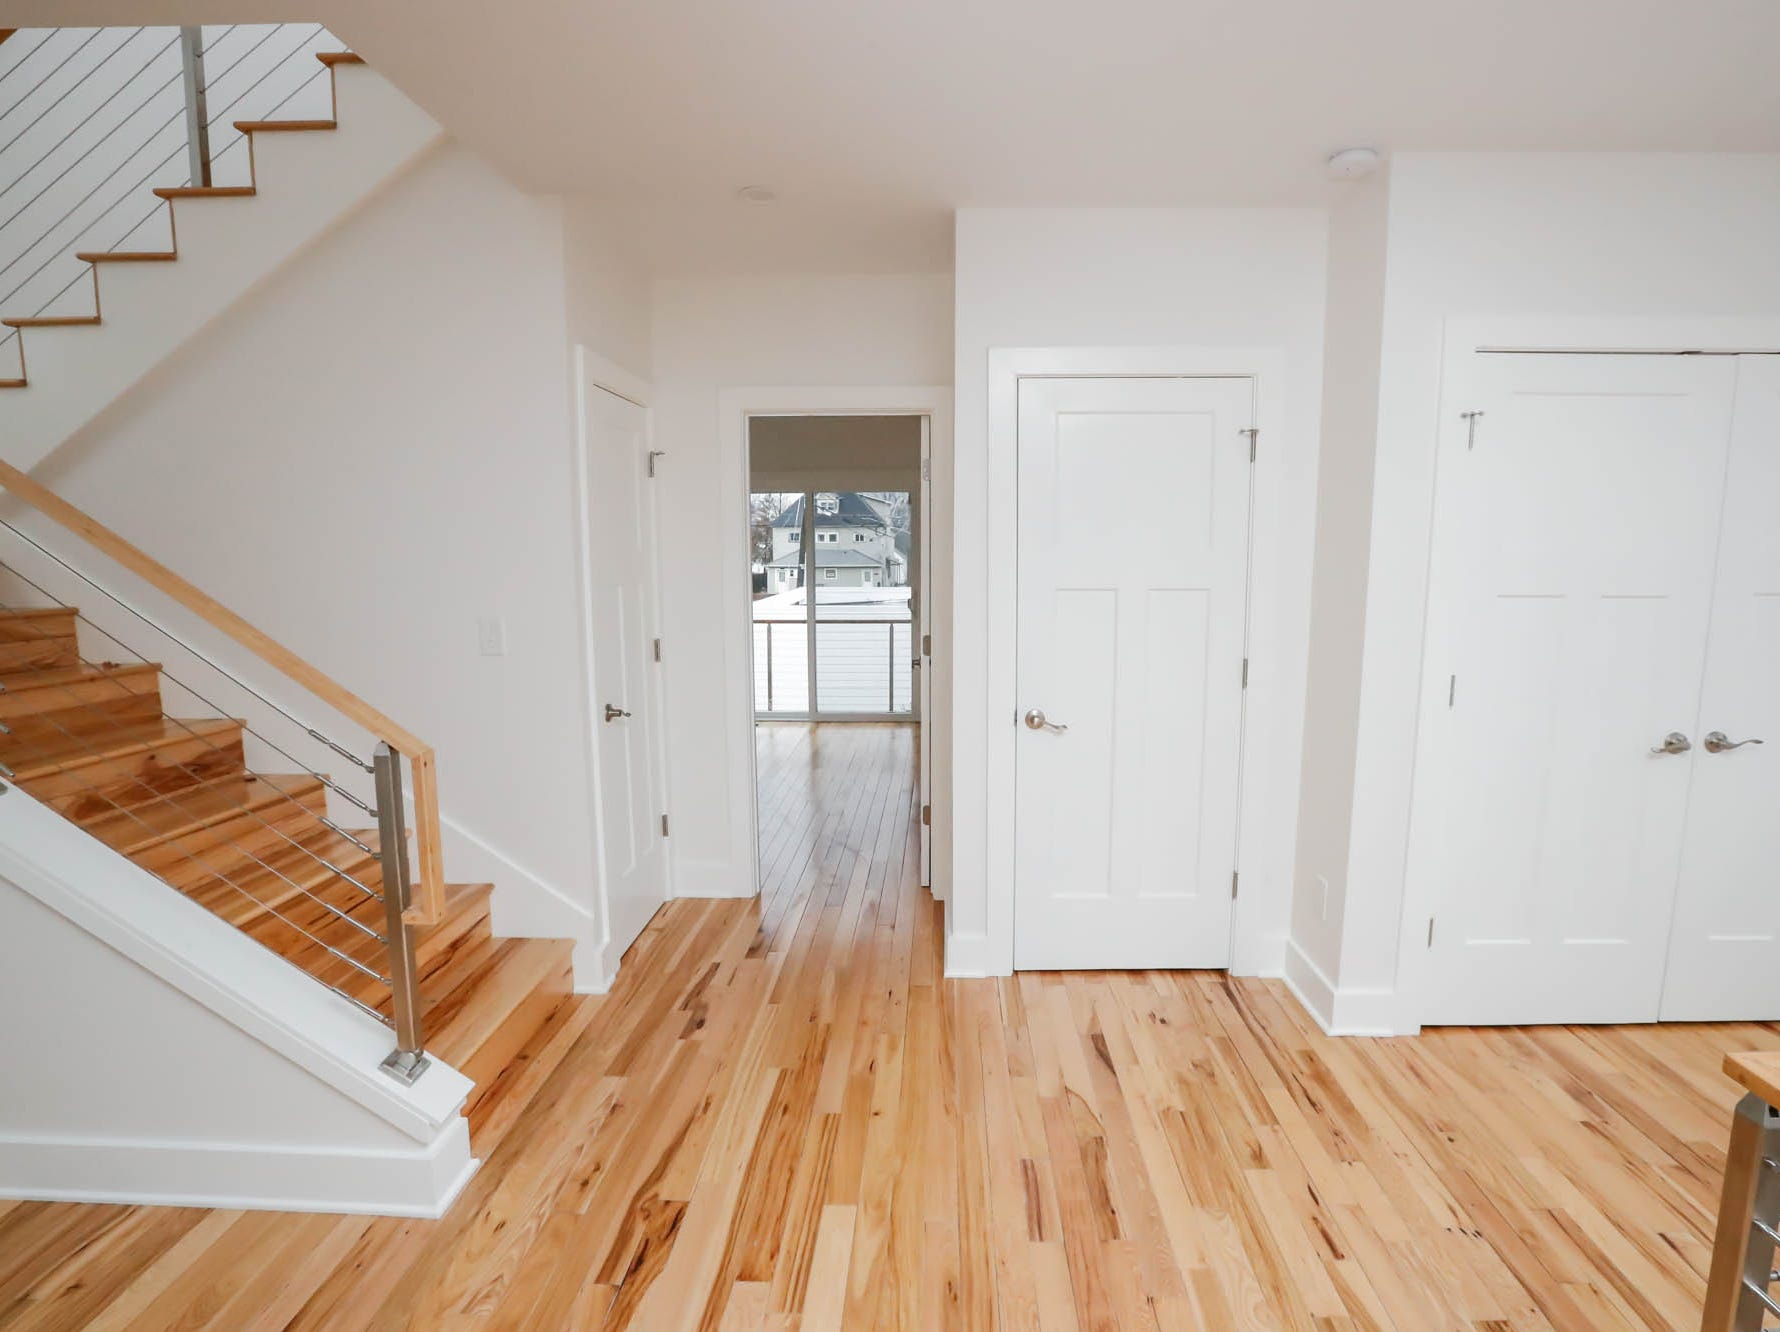 A second floor landing features a space for a home office on the left and a laundry room on the right, inside a newly built modern architectural home up for sale at 1134 Woodlawn Ave., Indianapolis, Ind., 46203, in the heart of the historic Fountain Square neighborhood on Wednesday, January, 23, 2019. The three-story home, which features 2,030-square-feet and an open space concept tile and hardwood floors are priced at $479,900.